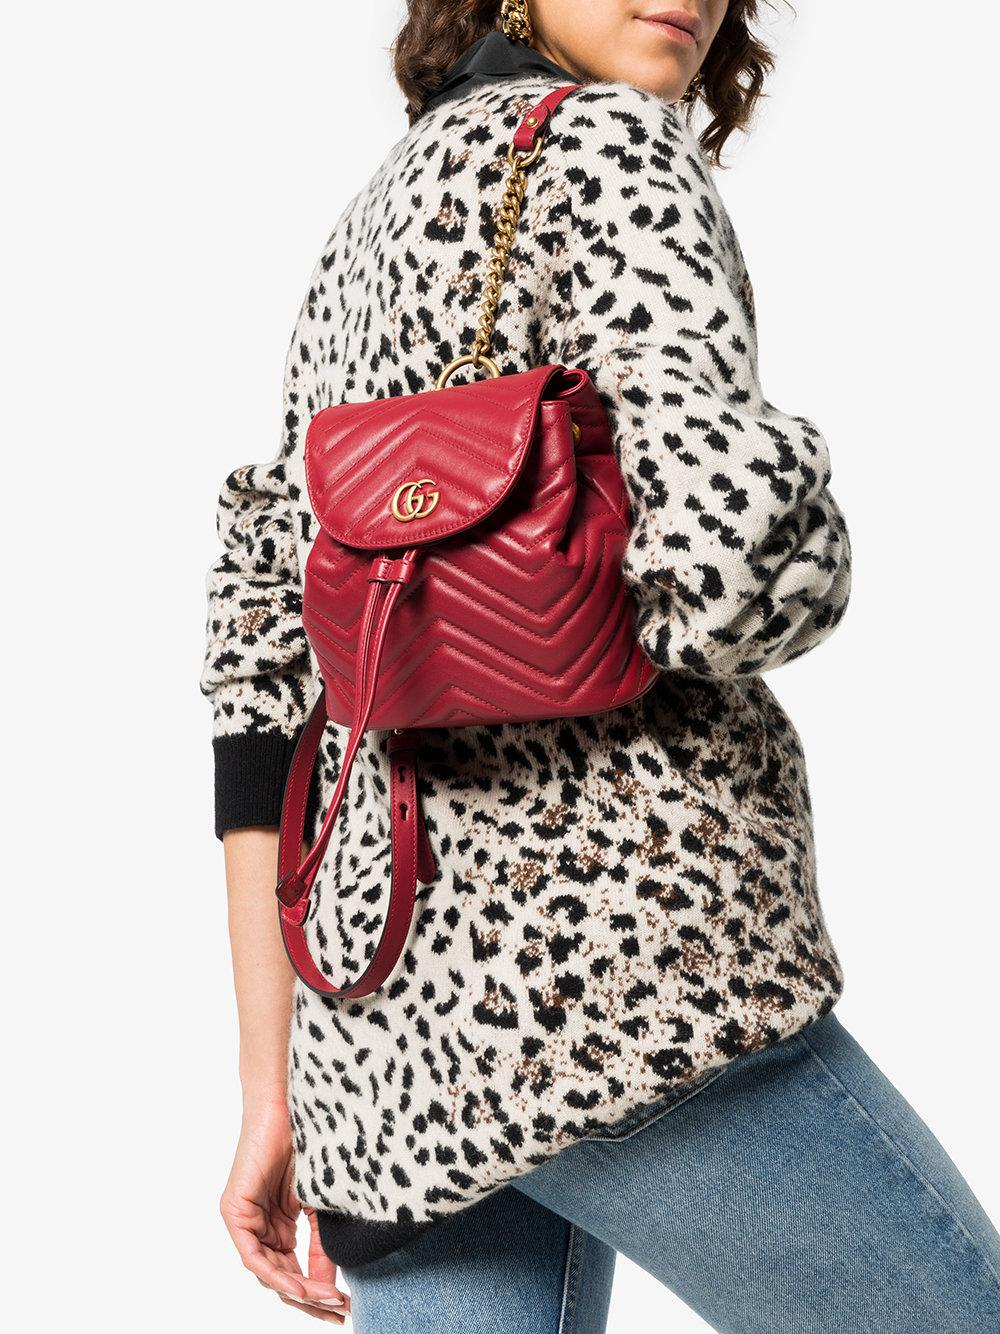 e37eefd966f8 Lyst - Gucci Red Marmont Quilted Leather Backpack in Red - Save 19%